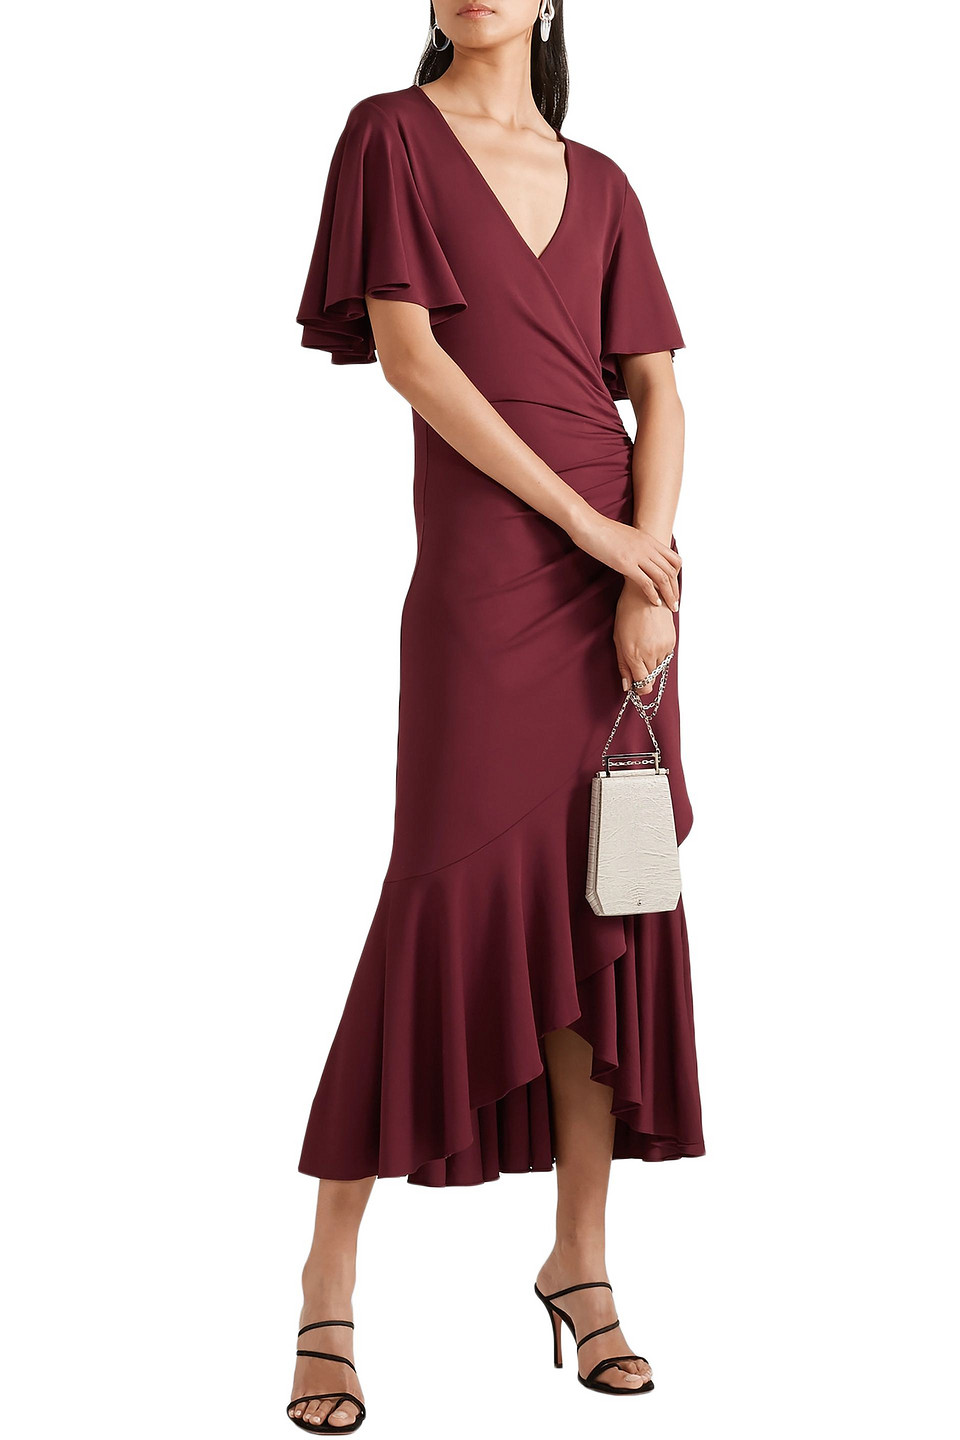 MICHAEL KORS | Michael Kors Collection Woman Wrap-effect Ruched Stretch-jersey Midi Dress Burgundy | Clouty